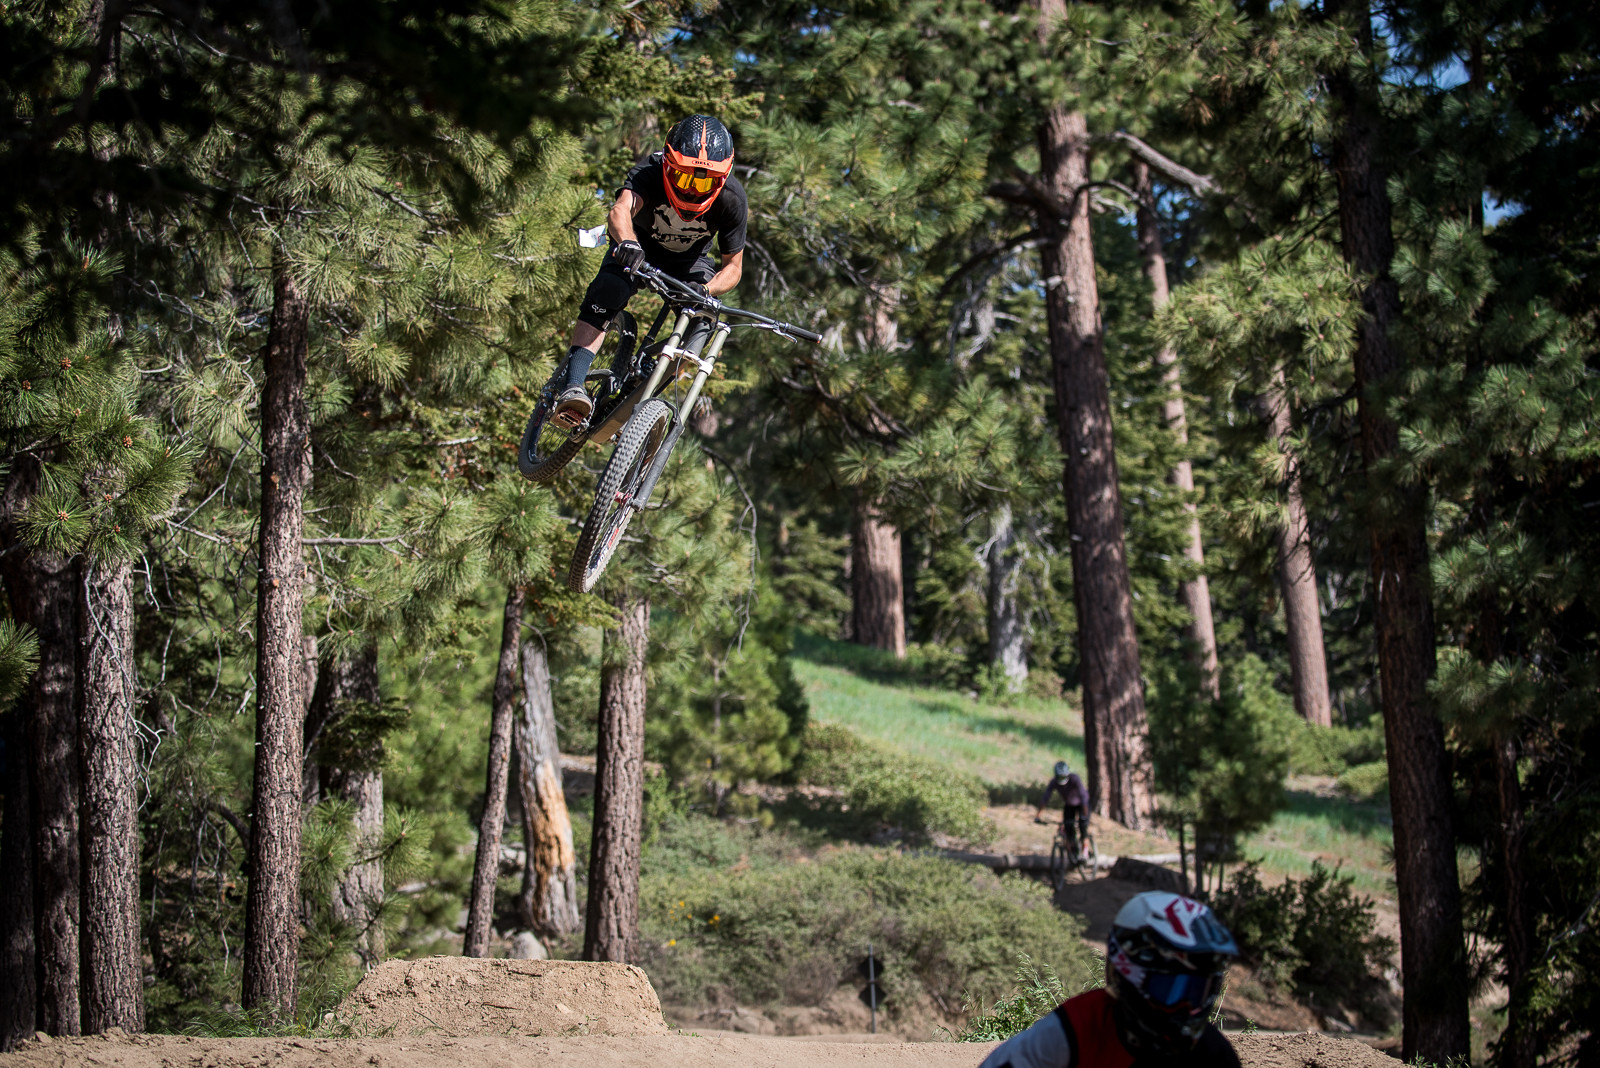 Tanner Stephens  - Vital Ditch Day 2016 at Snow Summit Bike Park - Mountain Biking Pictures - Vital MTB